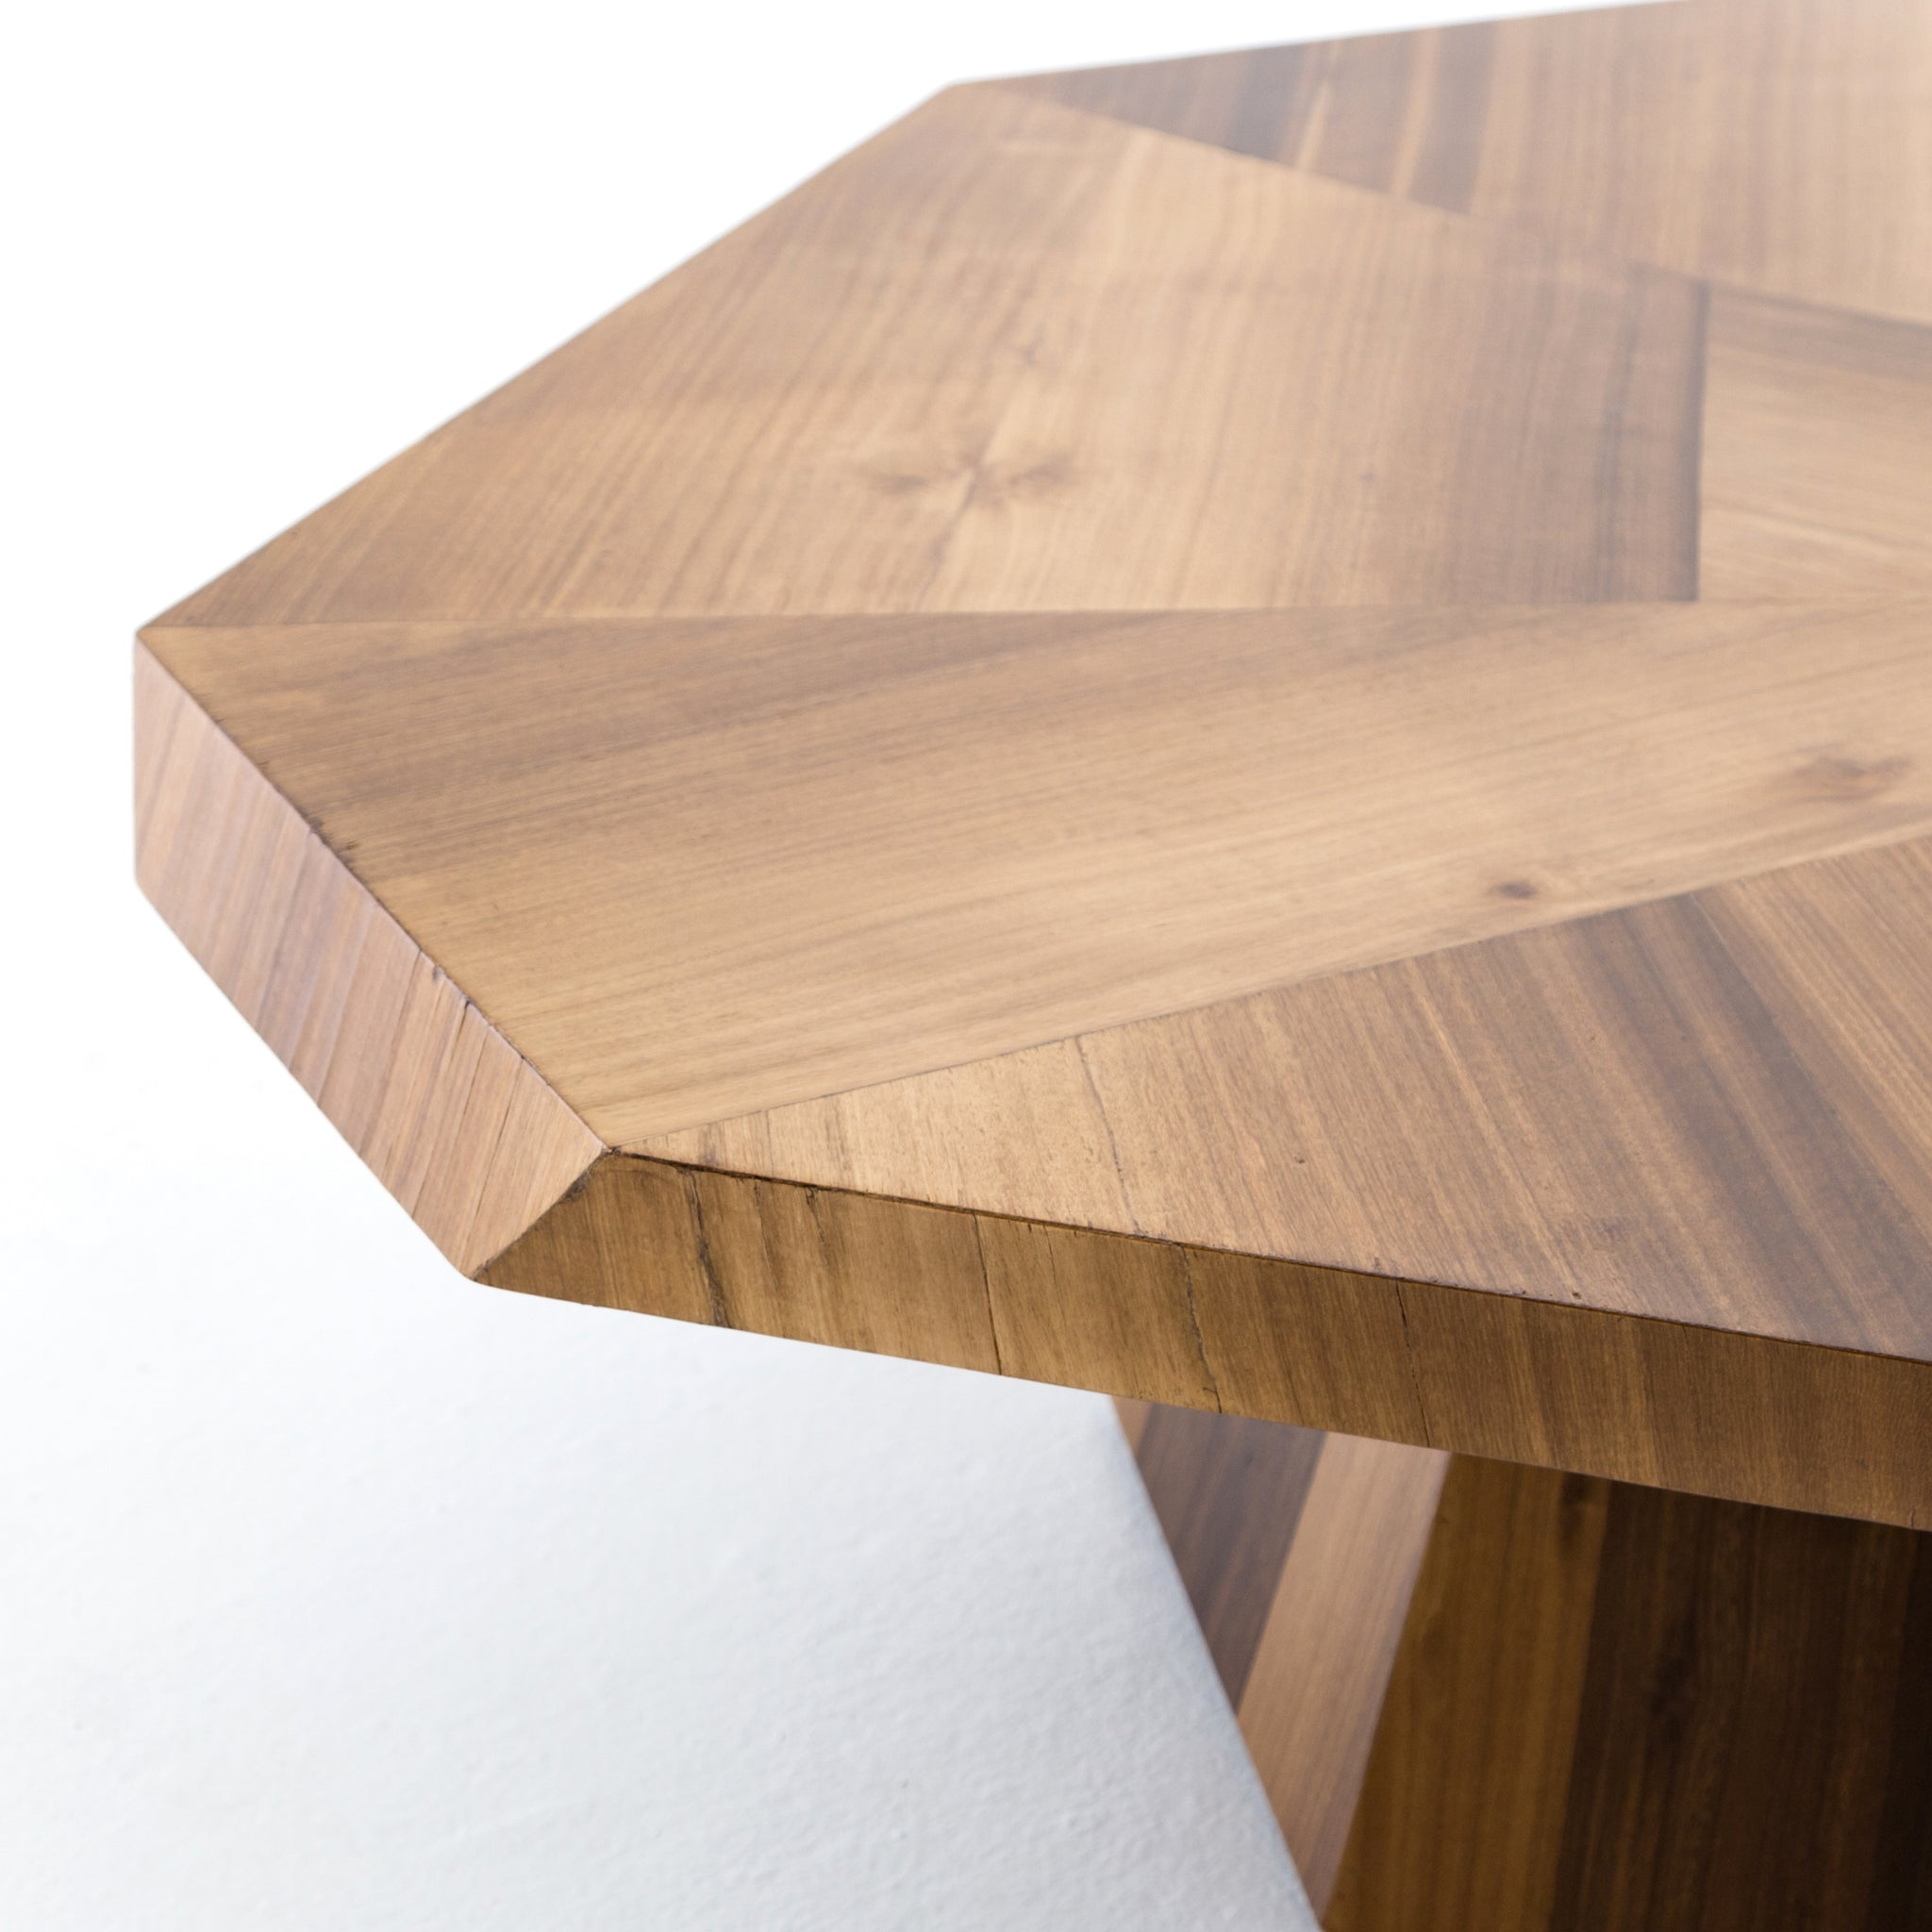 Yuka Wood Top Cocktail Table - Furniture on Main